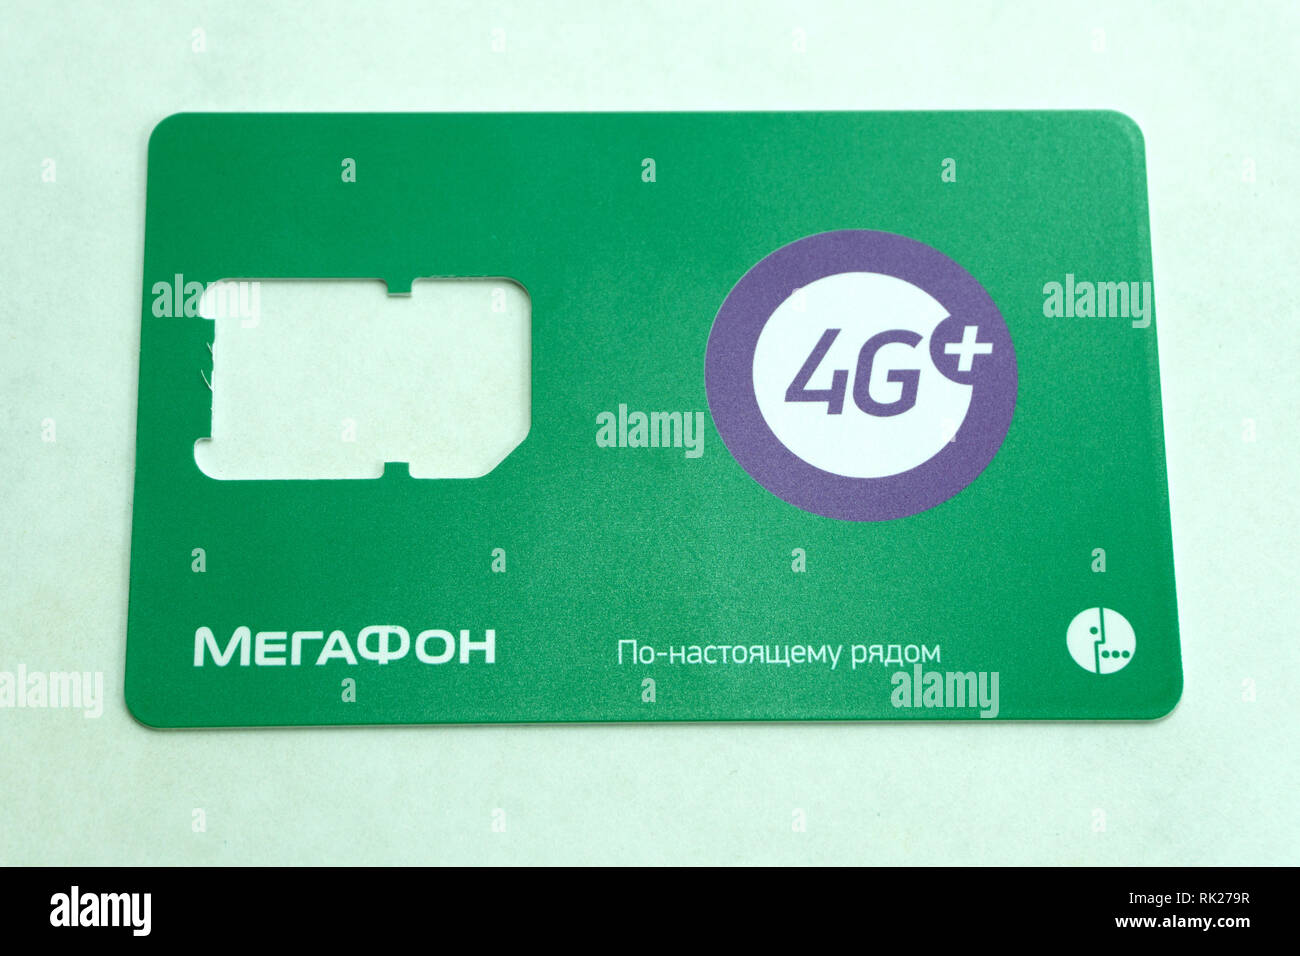 4g network concept illustrated by a picture on background . megaphone 17 November 2018 Russia Berezniki - Stock Image